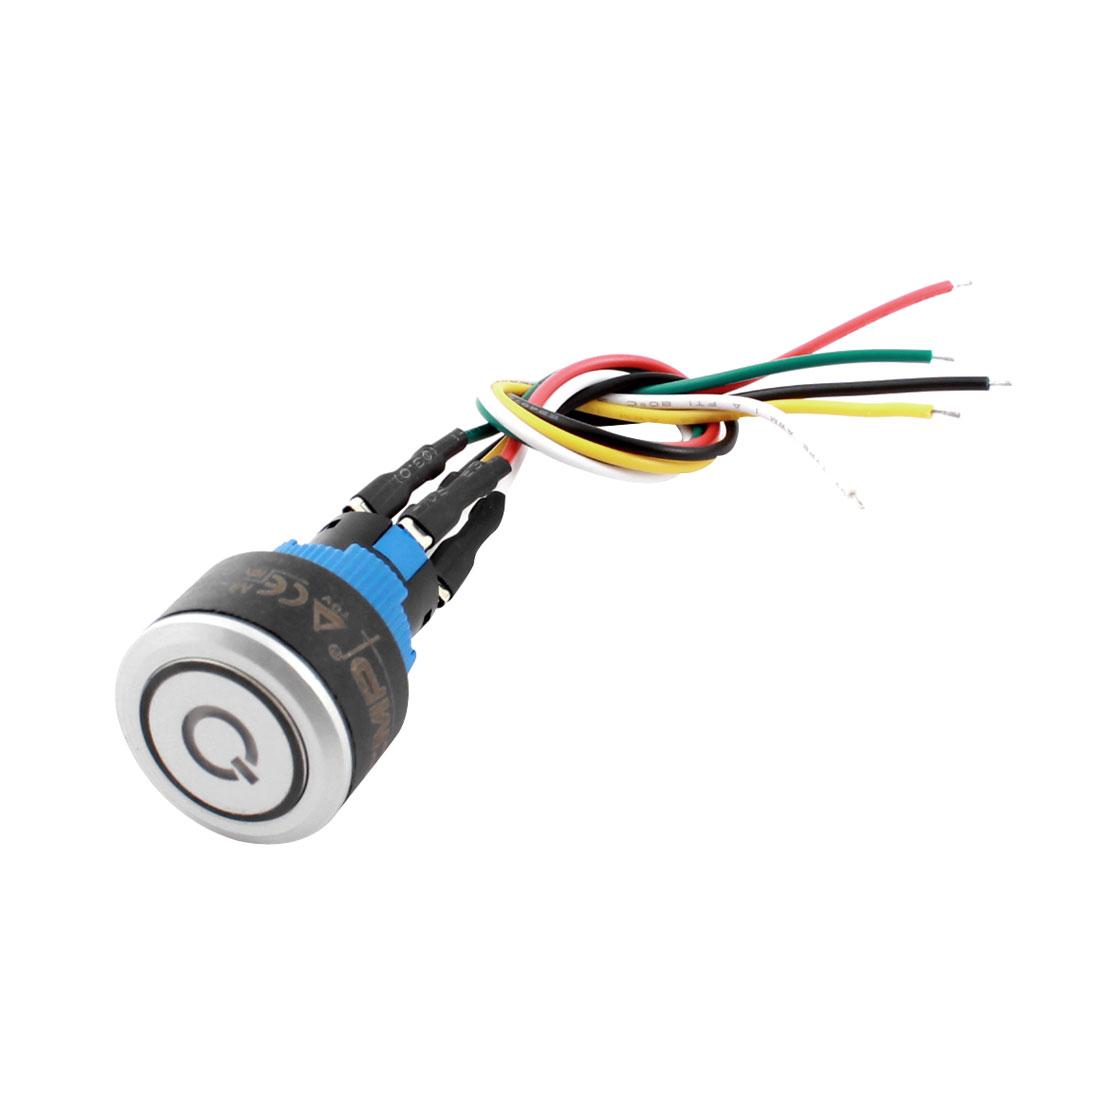 DC12V 20mm Panel Mount SPDT Momentary Metal Nut Pluggable Wire Blue LED Car Pushbutton Switch